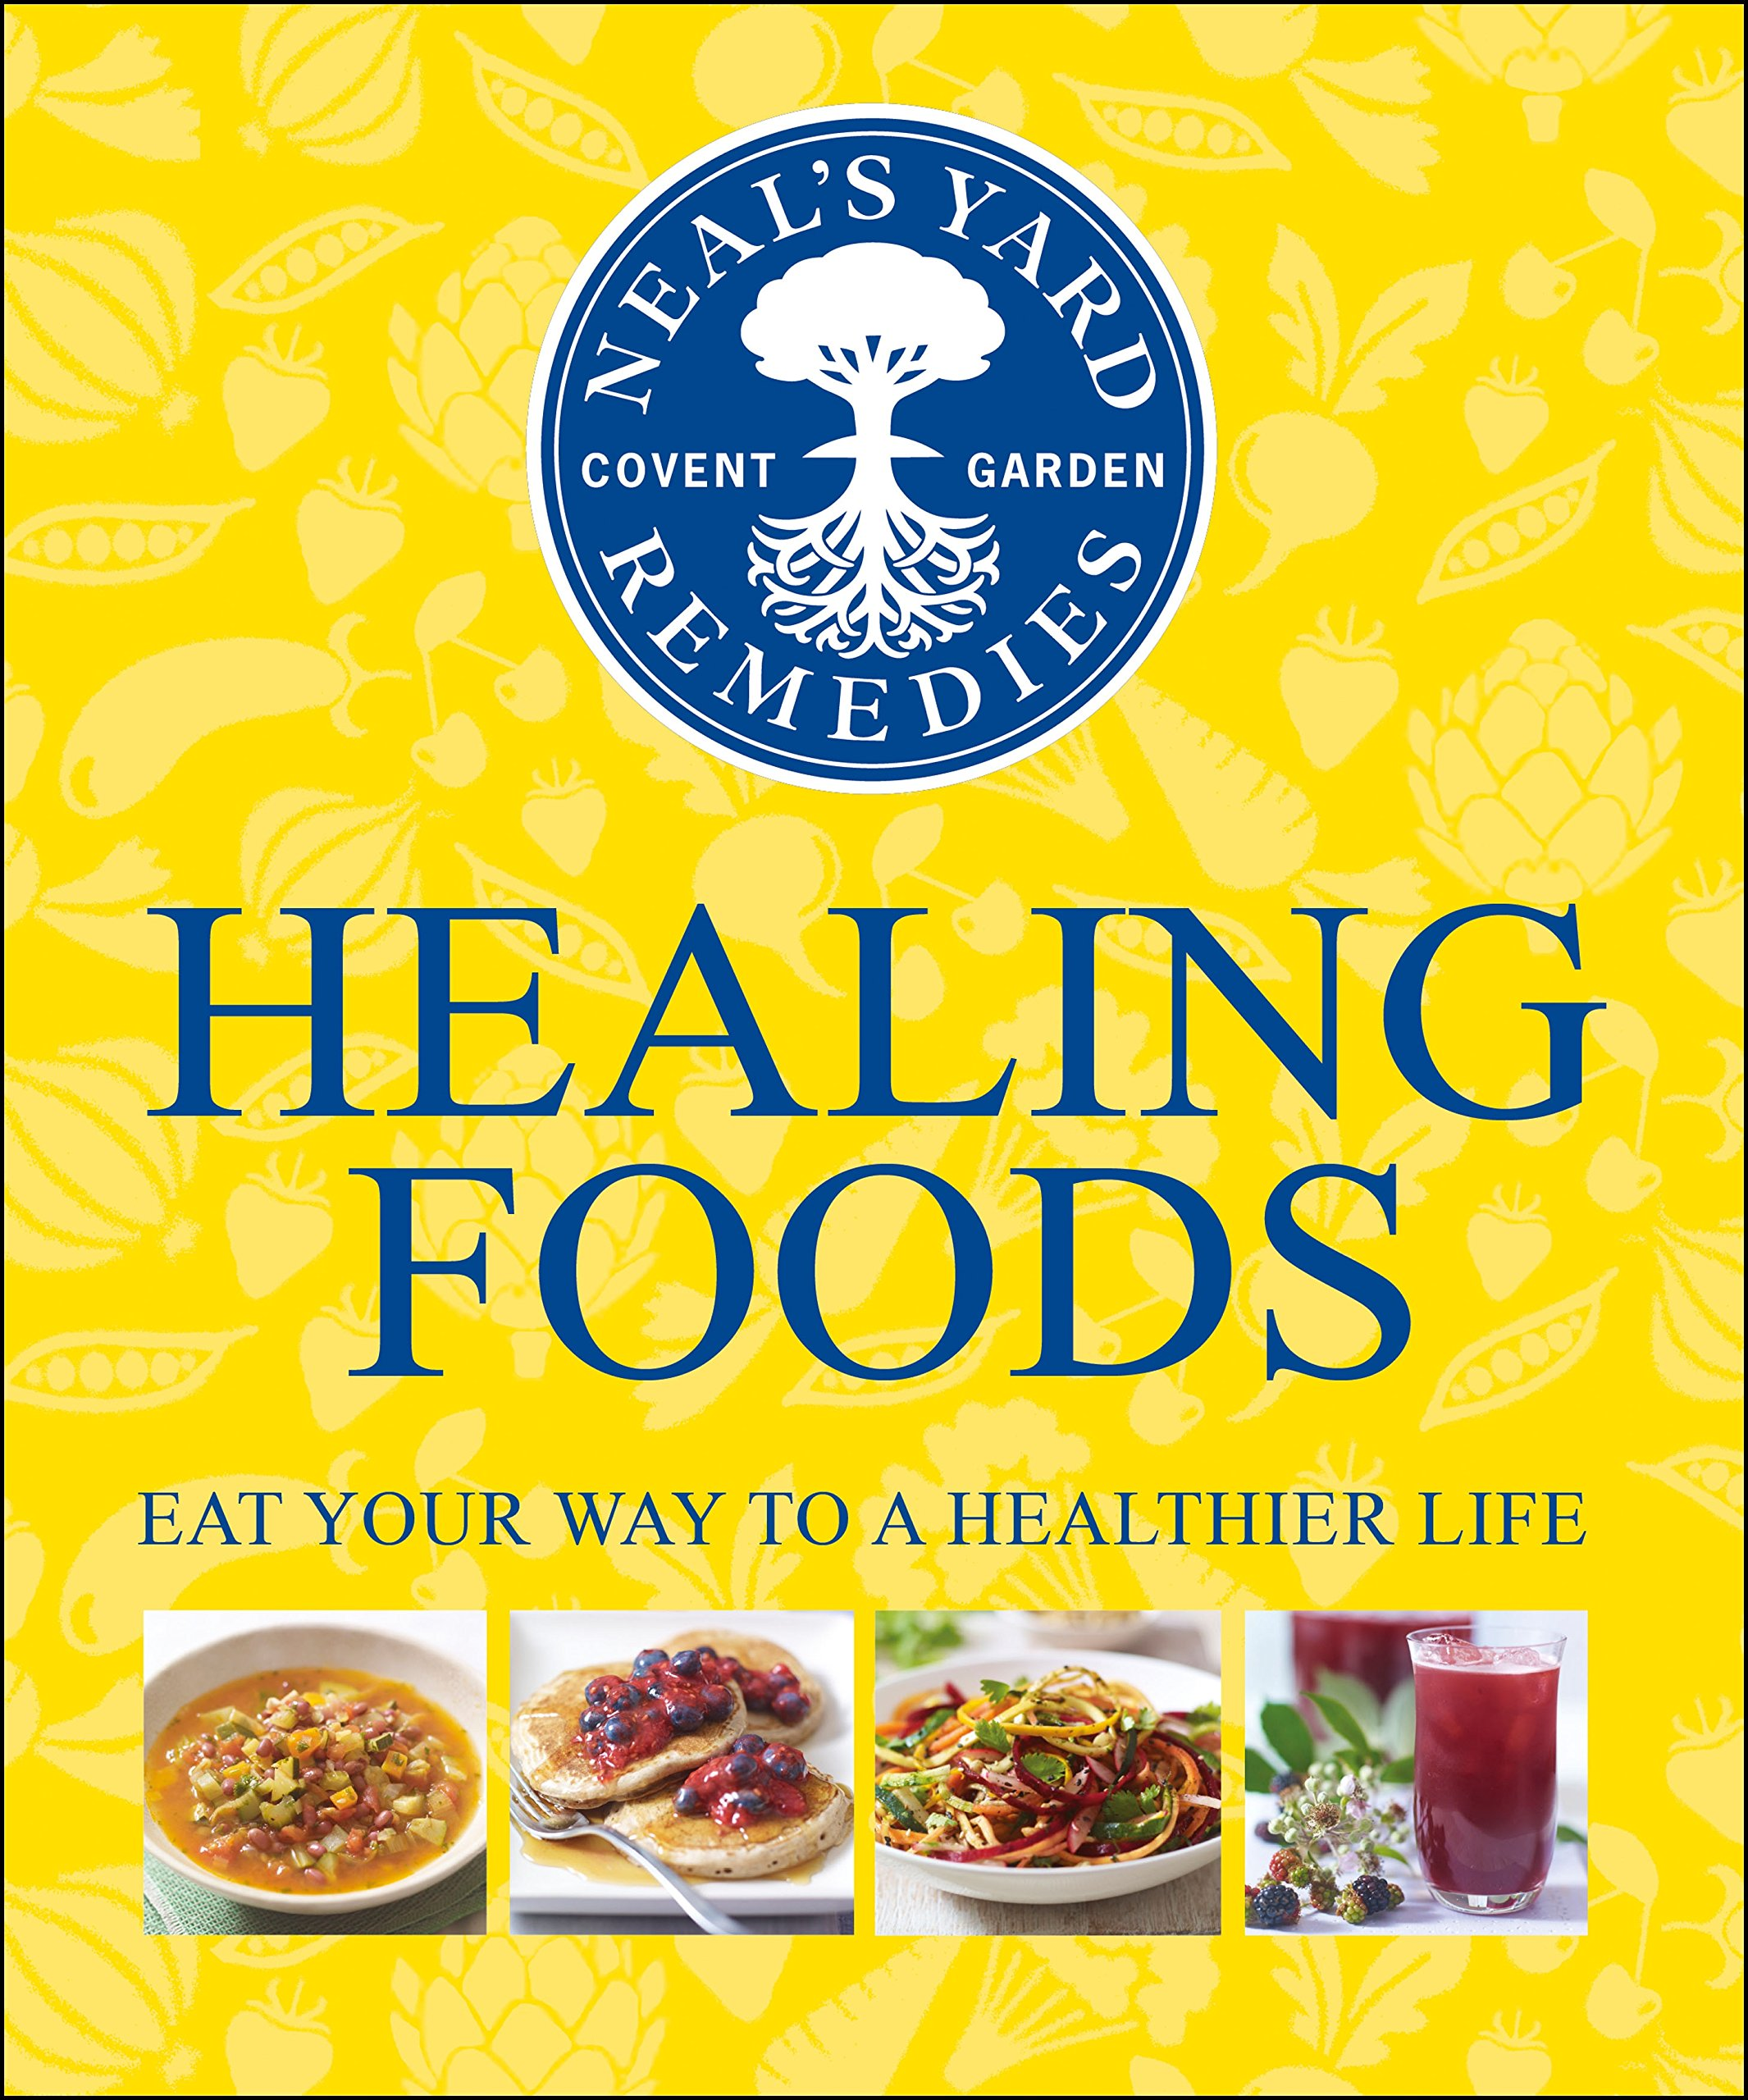 b267b0e6adc5f Neal's Yard Remedies Healing Foods: Eat Your Way to a Healthier Life ...